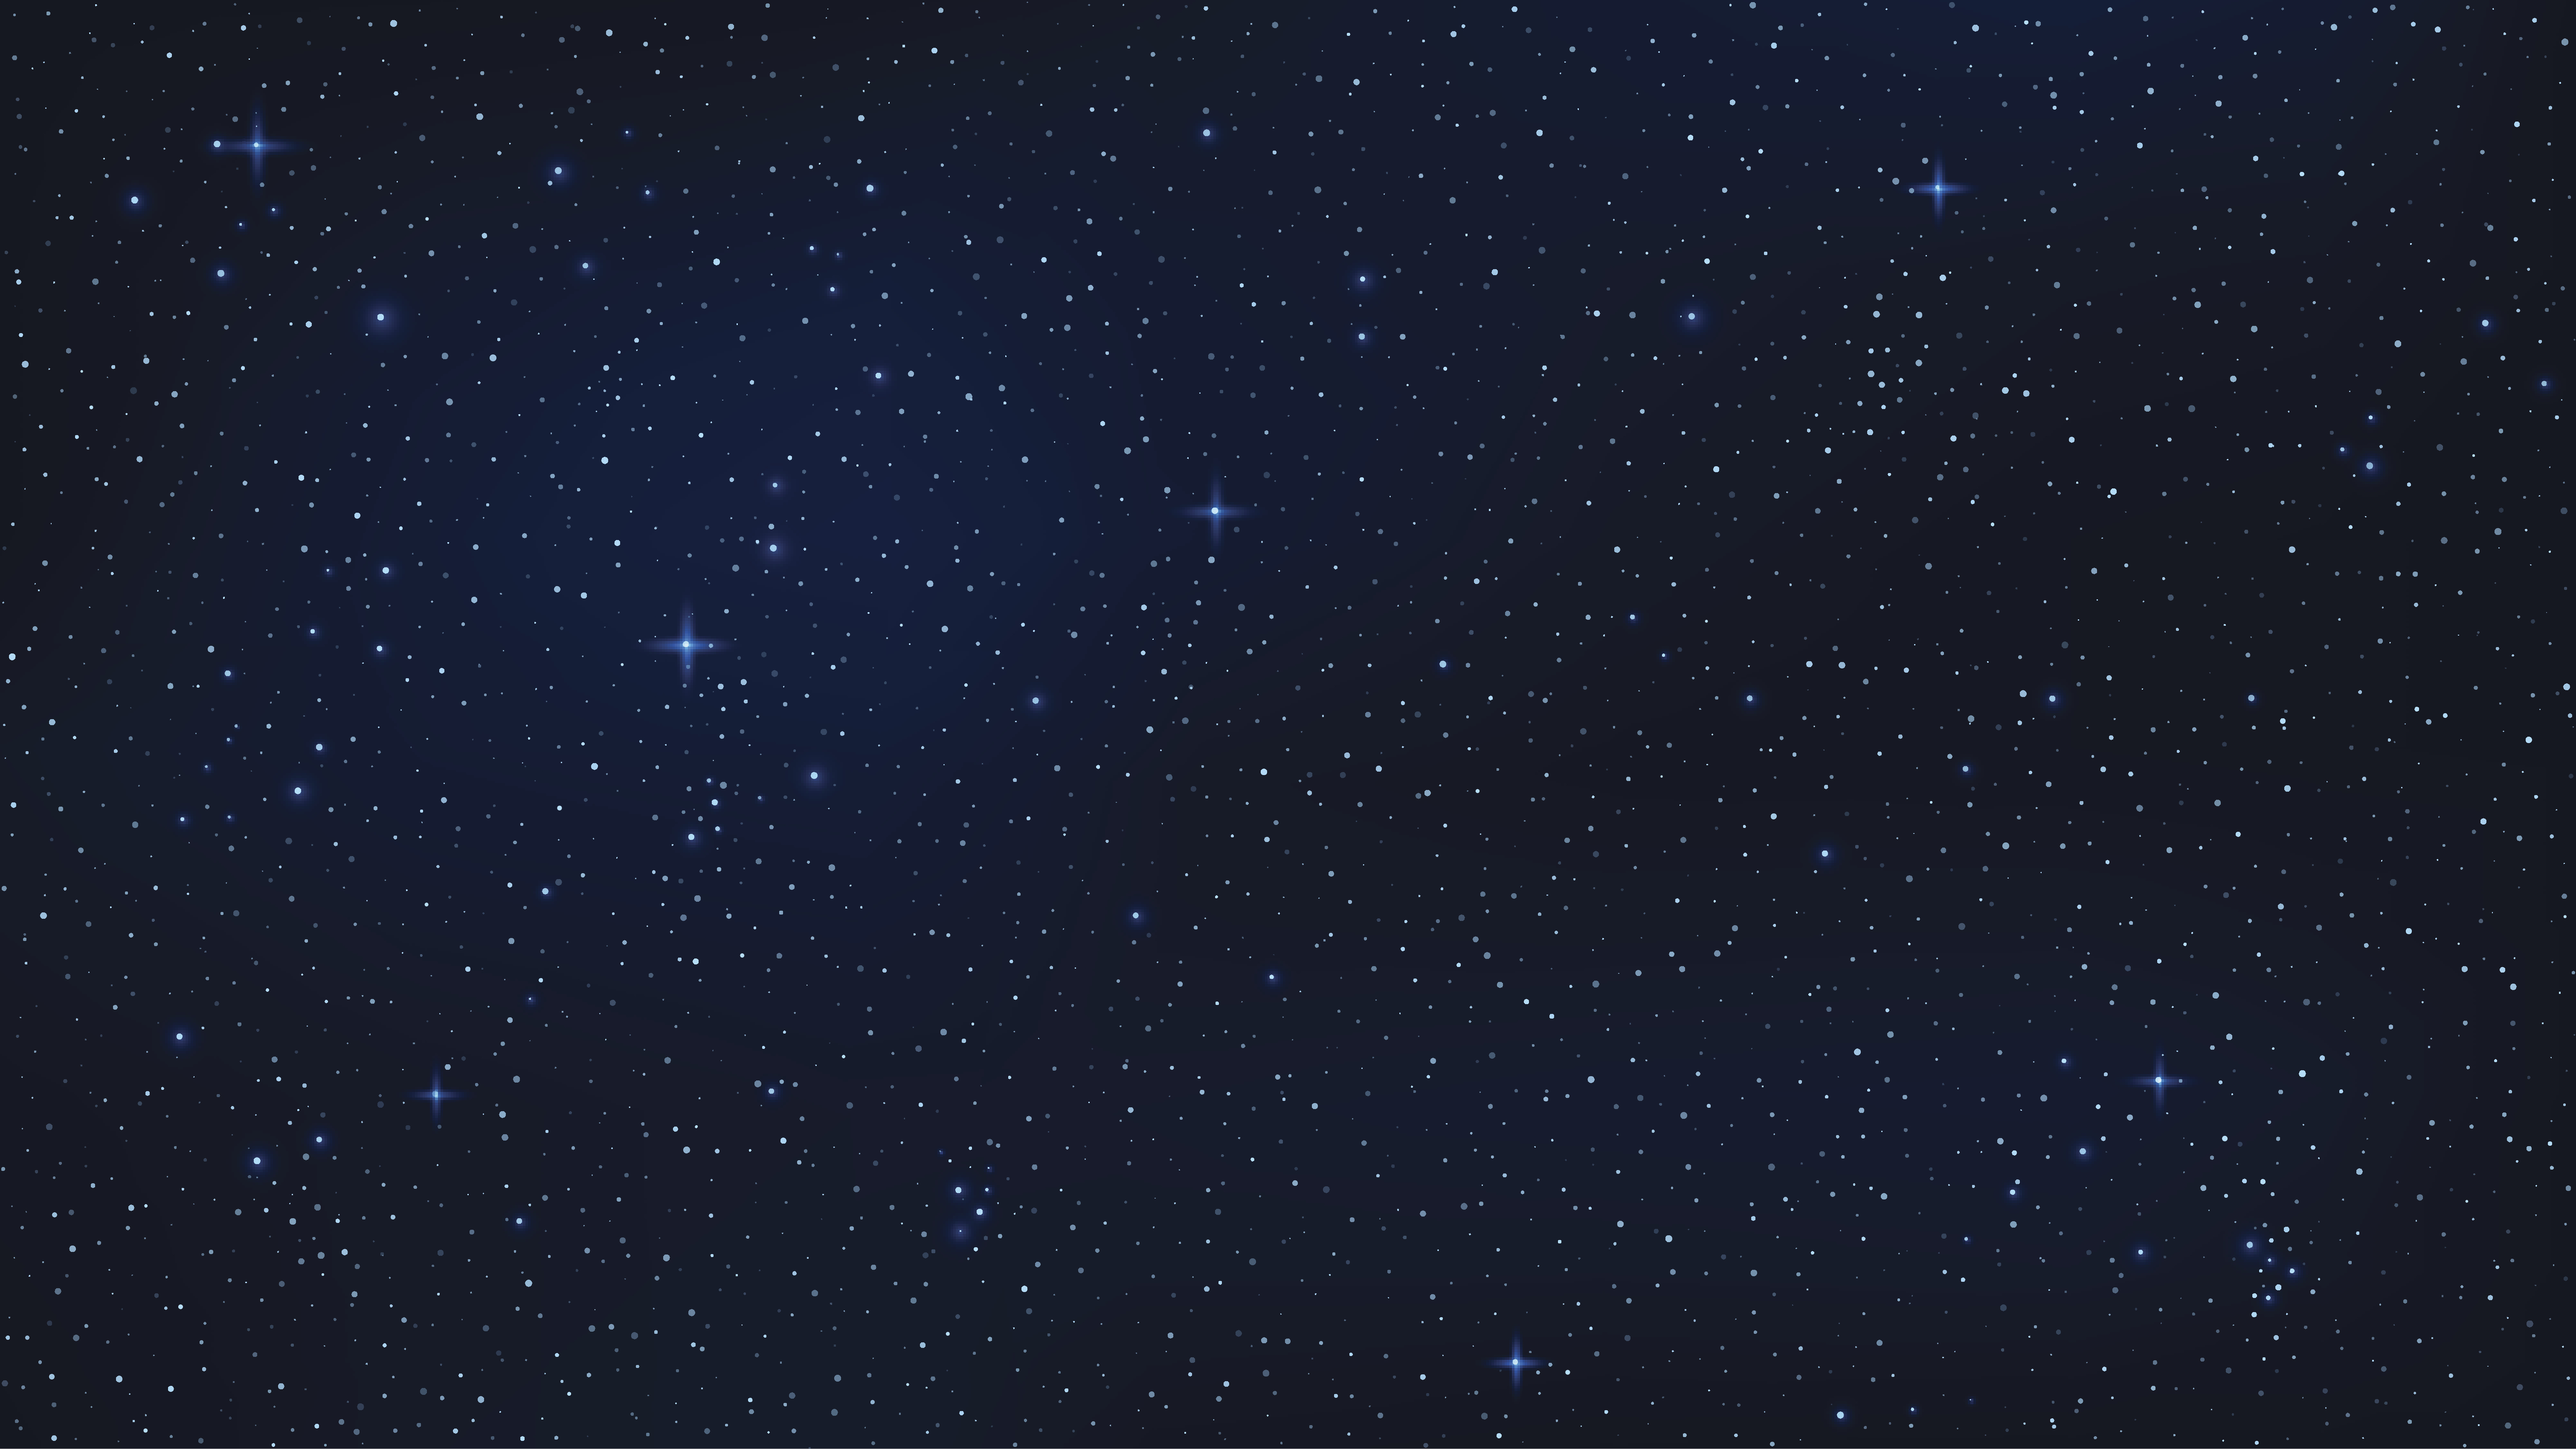 6040x3397 - Dark Sky Background 5